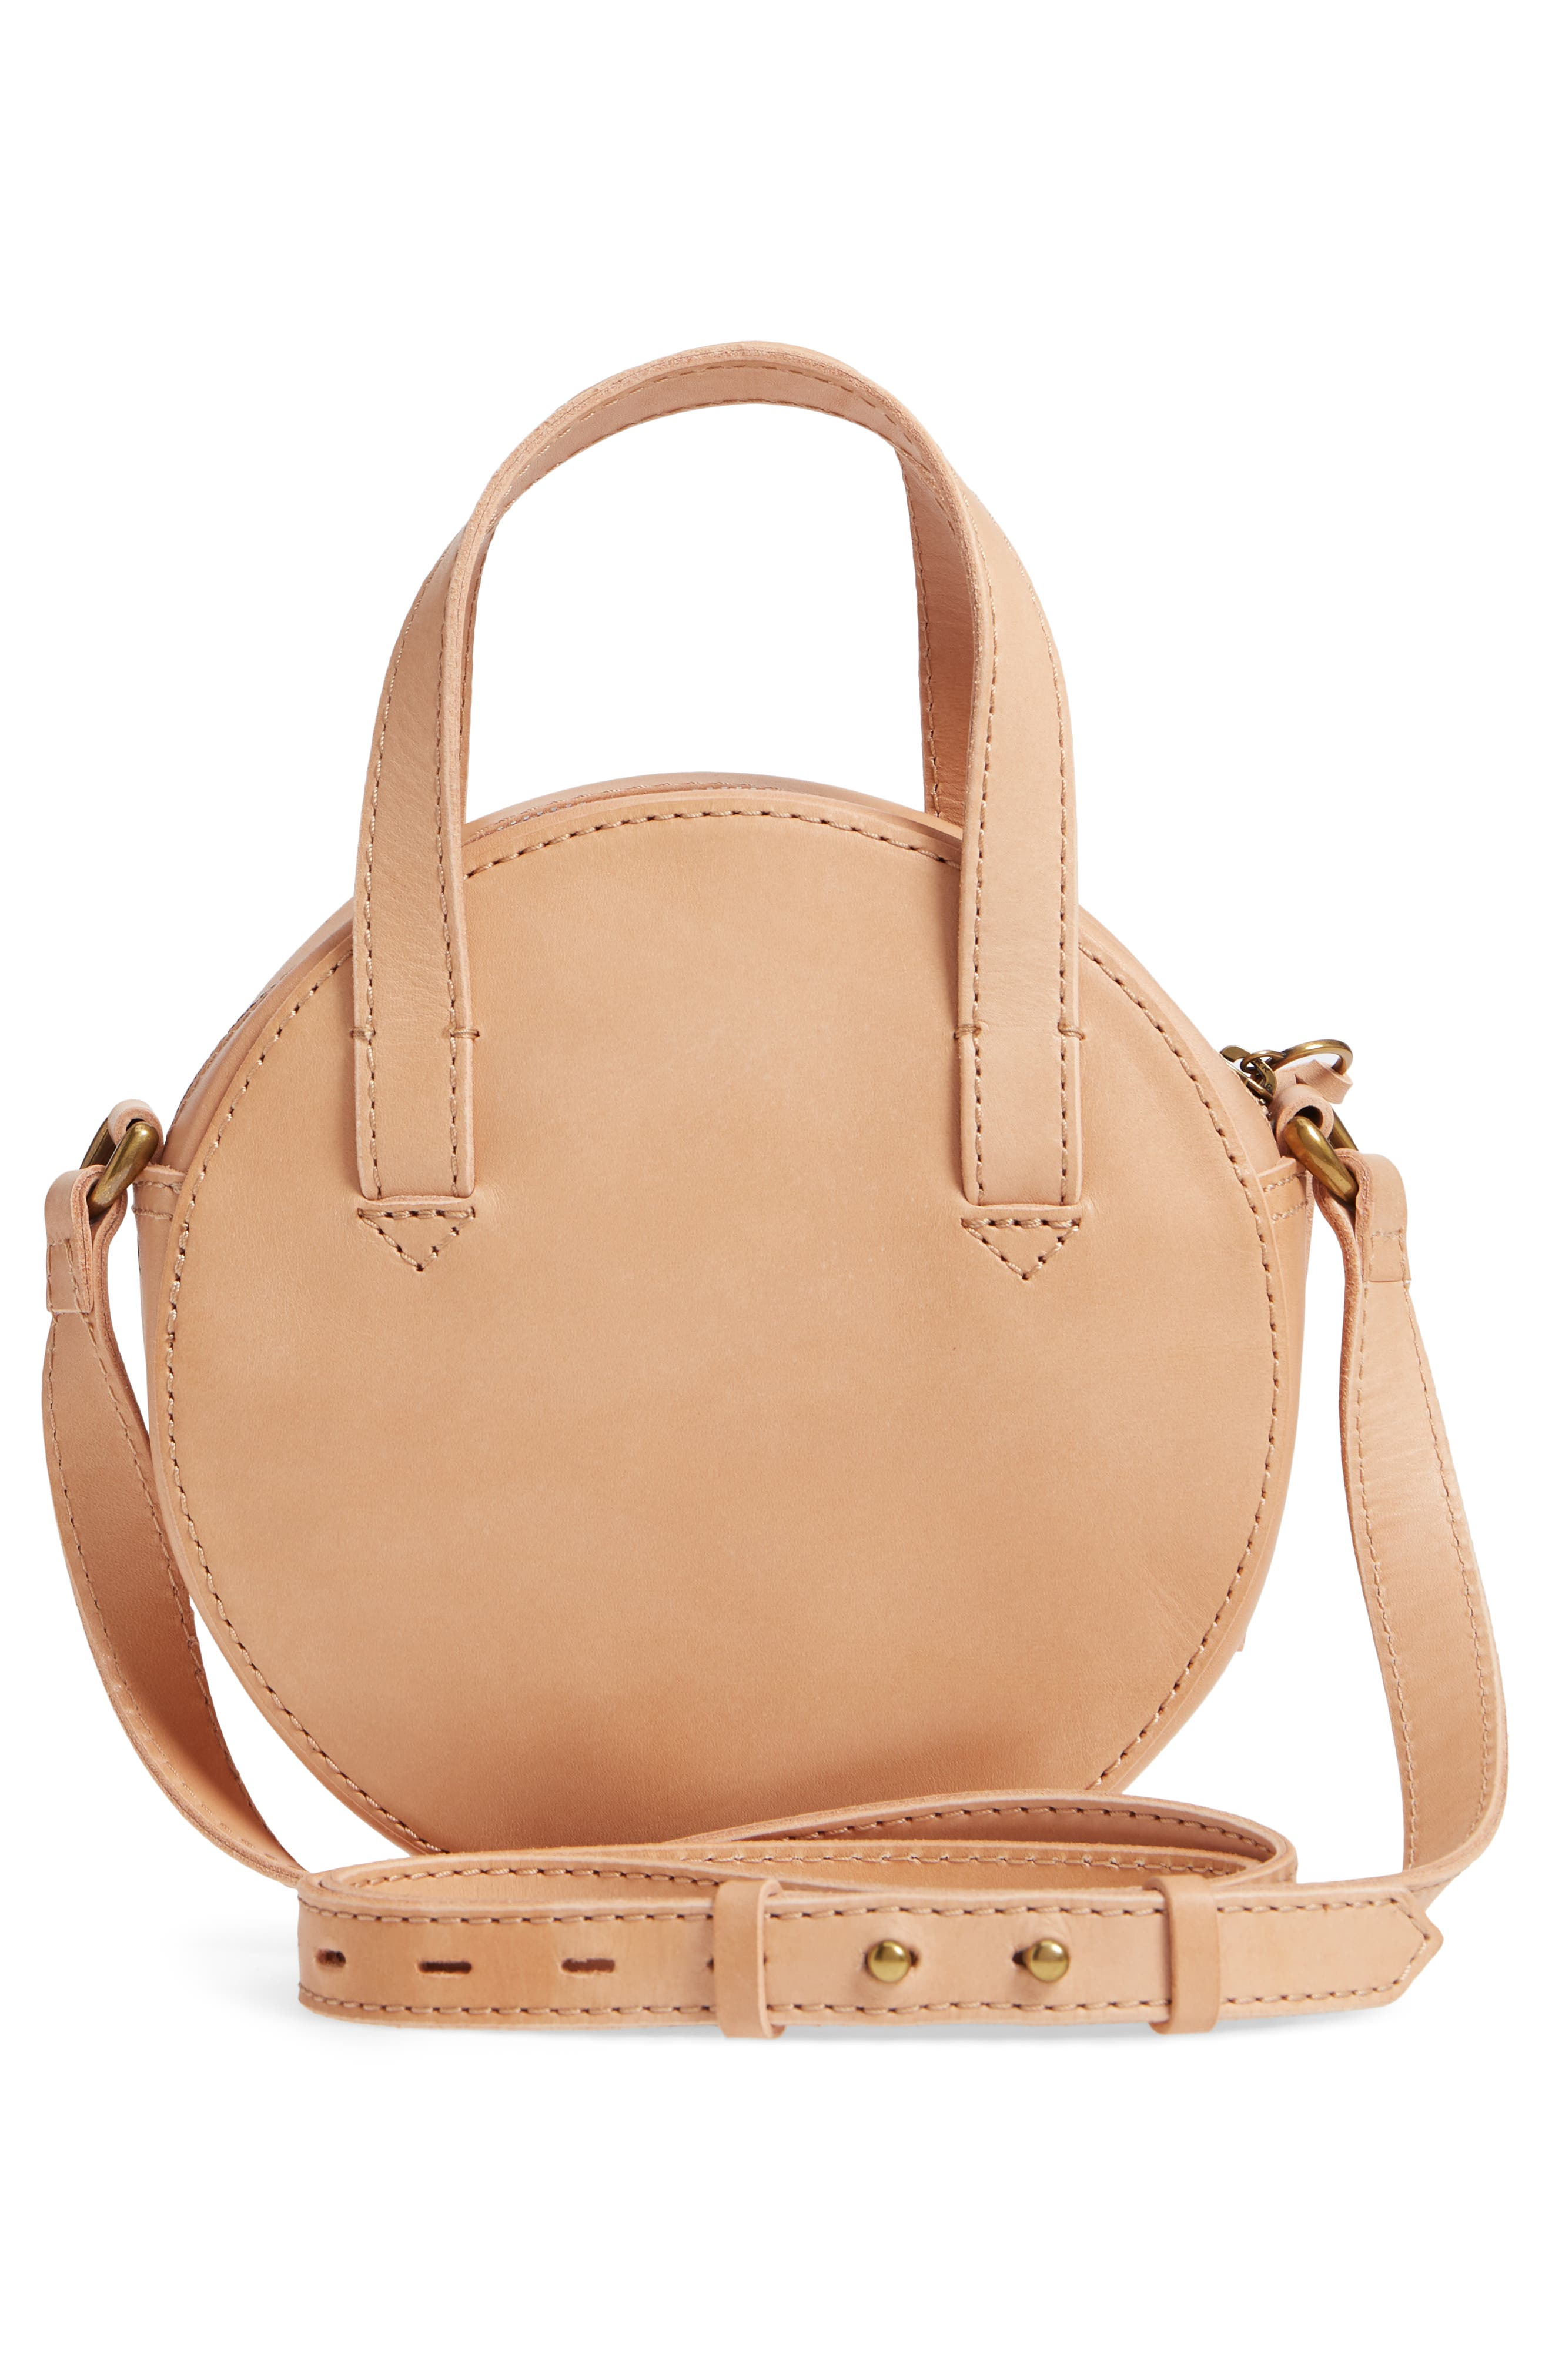 MADEWELL,                             Juno Circle Leather Crossbody Bag,                             Alternate thumbnail 3, color,                             250